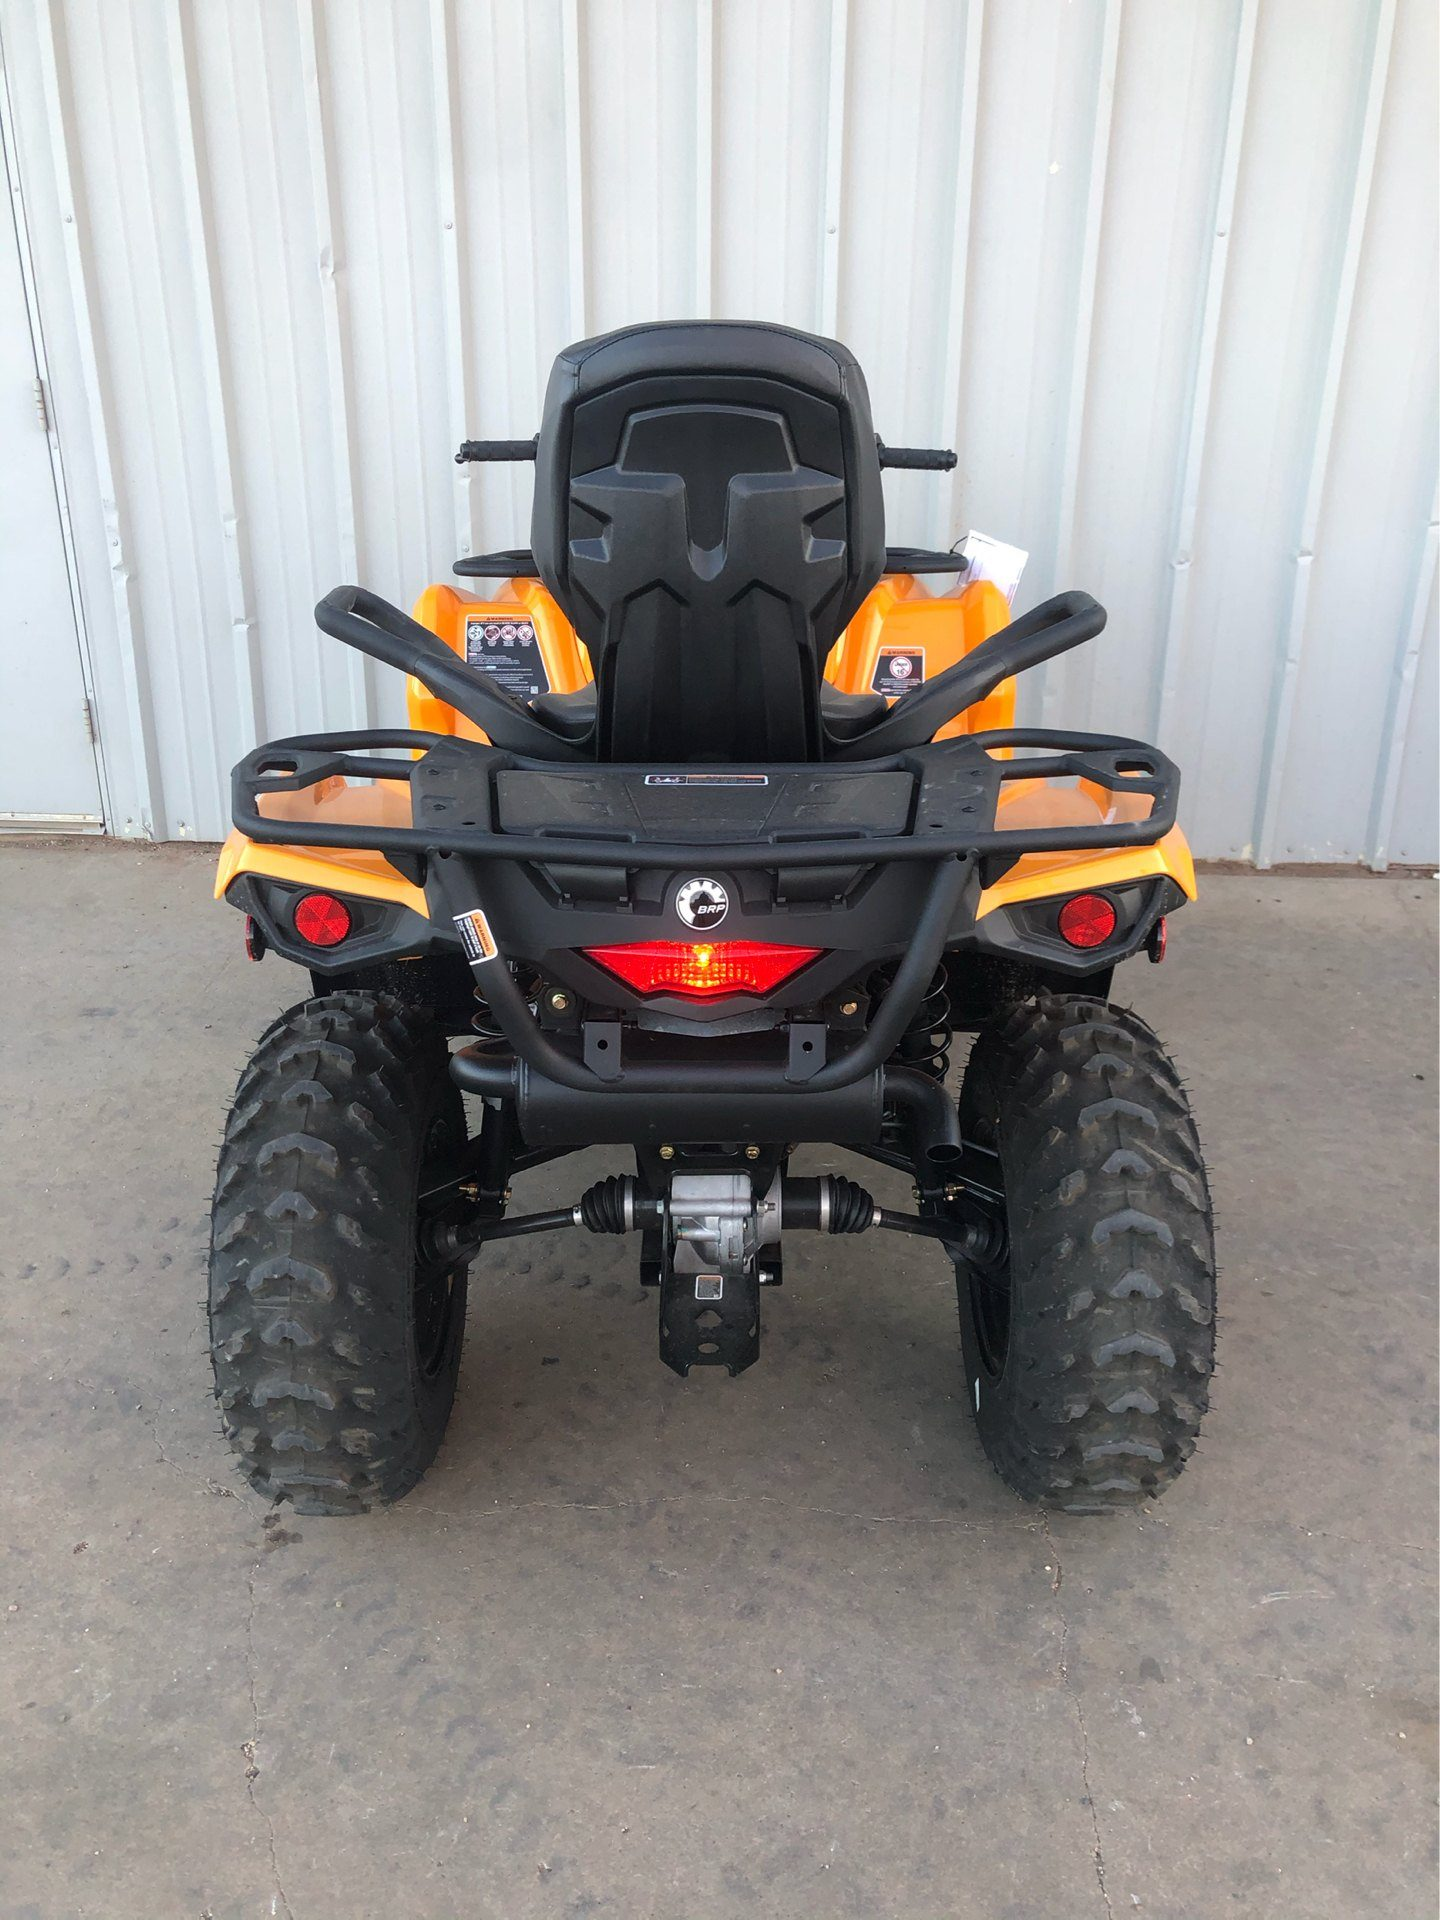 2020 Can-Am Outlander MAX DPS 570 in Amarillo, Texas - Photo 4